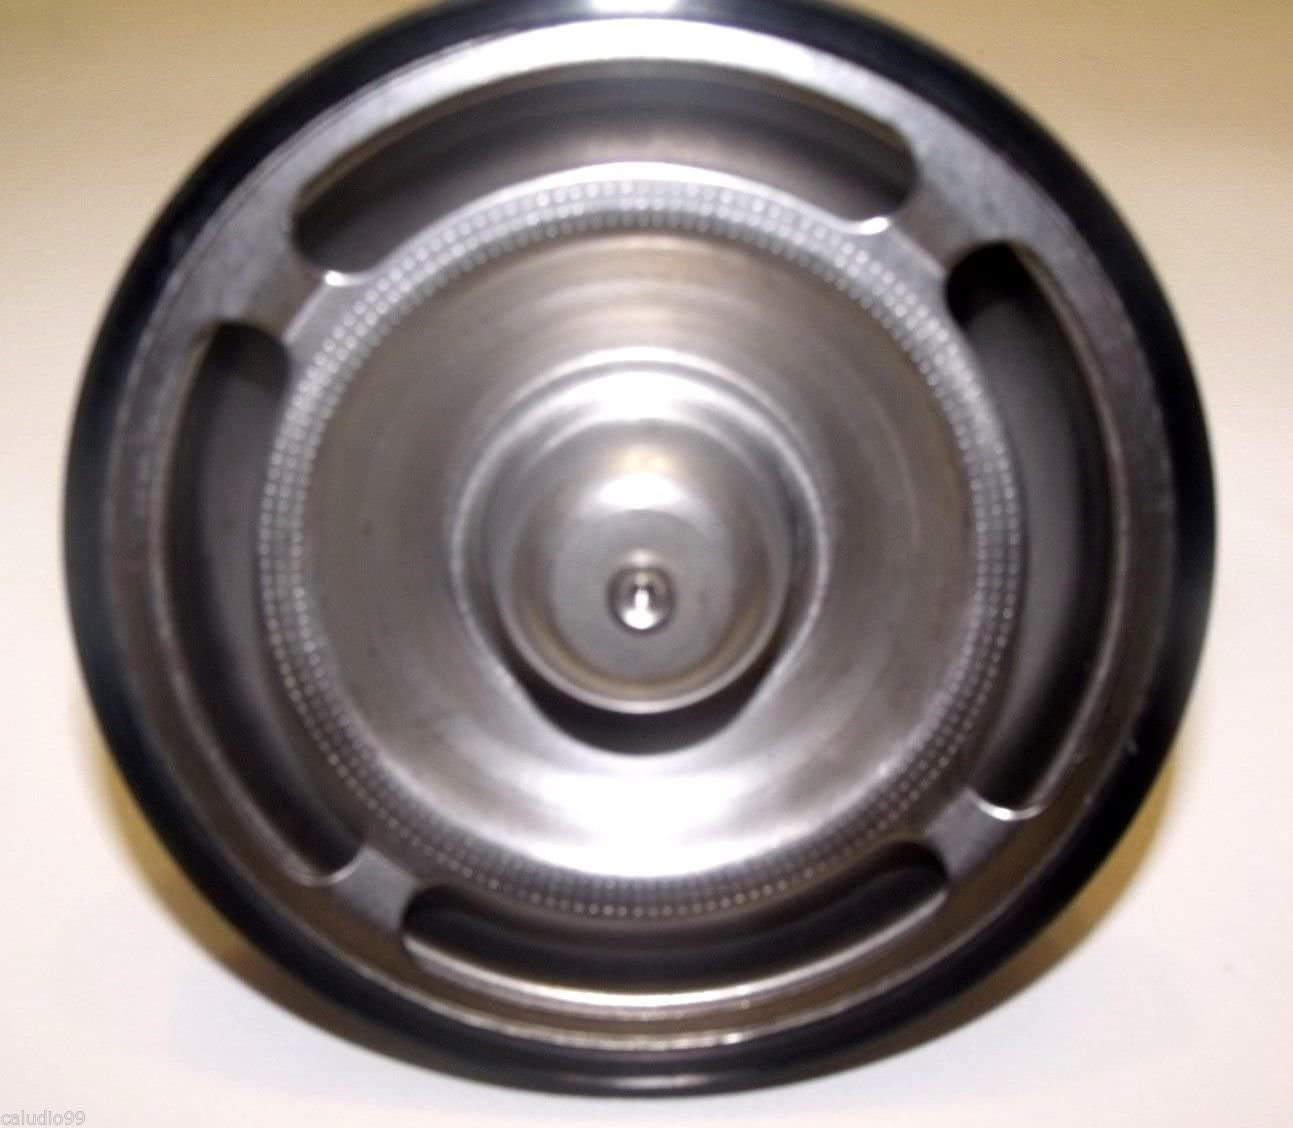 20560249 Thermostat for Mack Mp8 Volvo Engine 21412639 with Seal NEW 21237213 Interchange